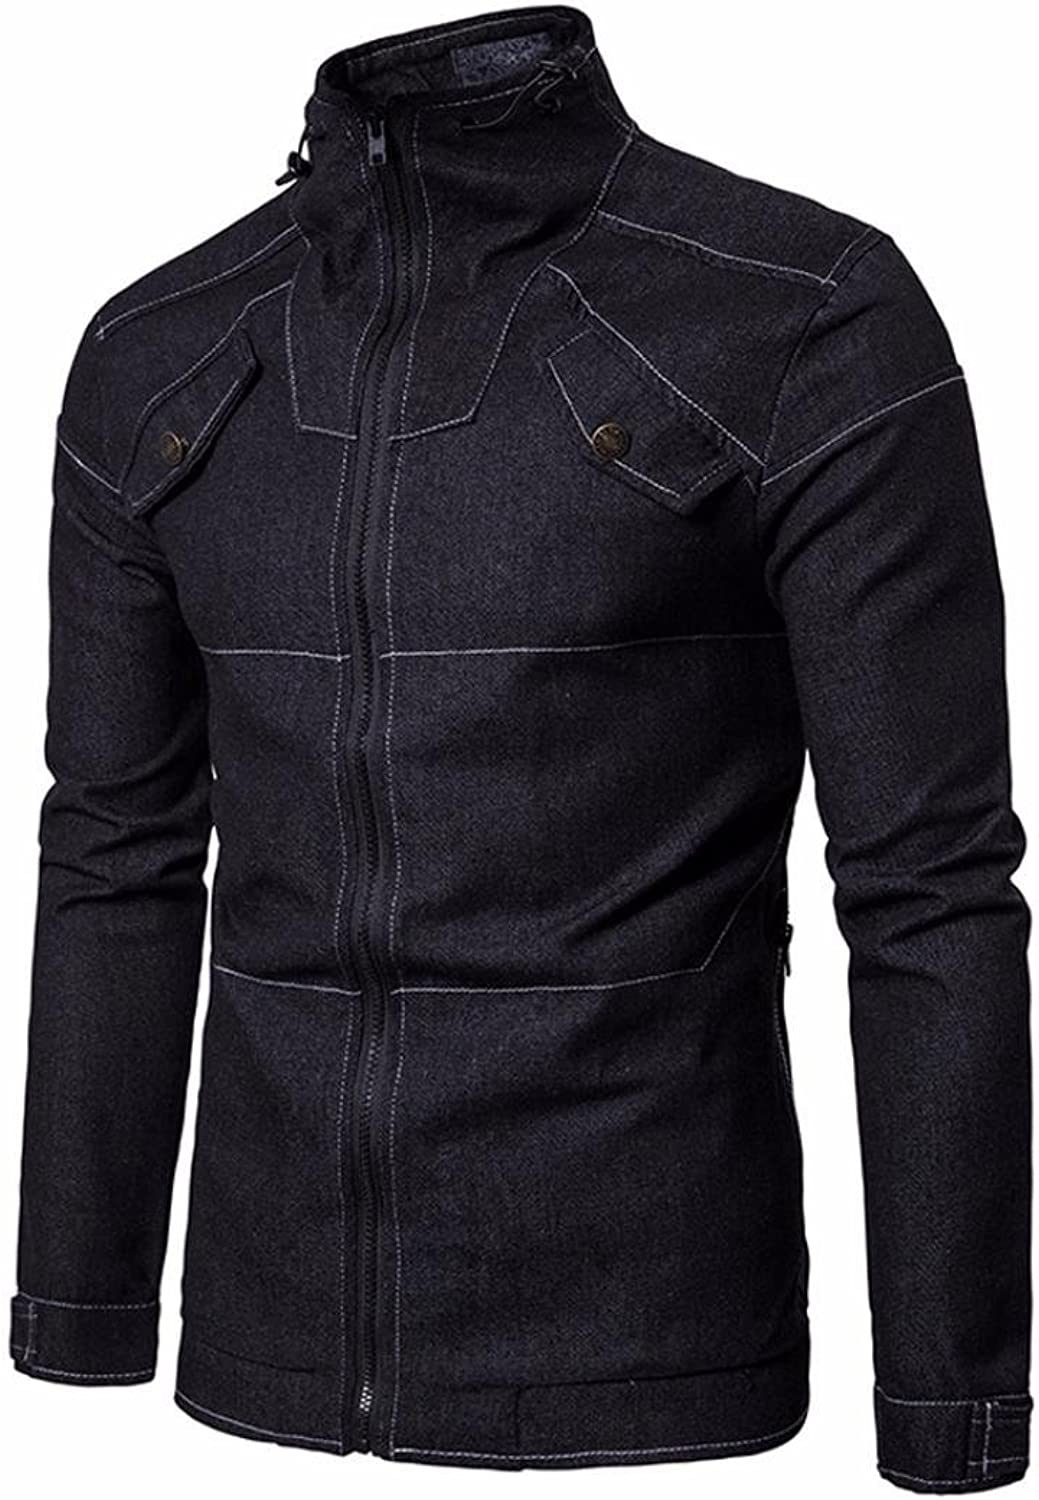 Dreamyth Men's Autumn Cowboy Slim Long Sleeved Denim Solid Blouse Fit Shirt Jacket Practical